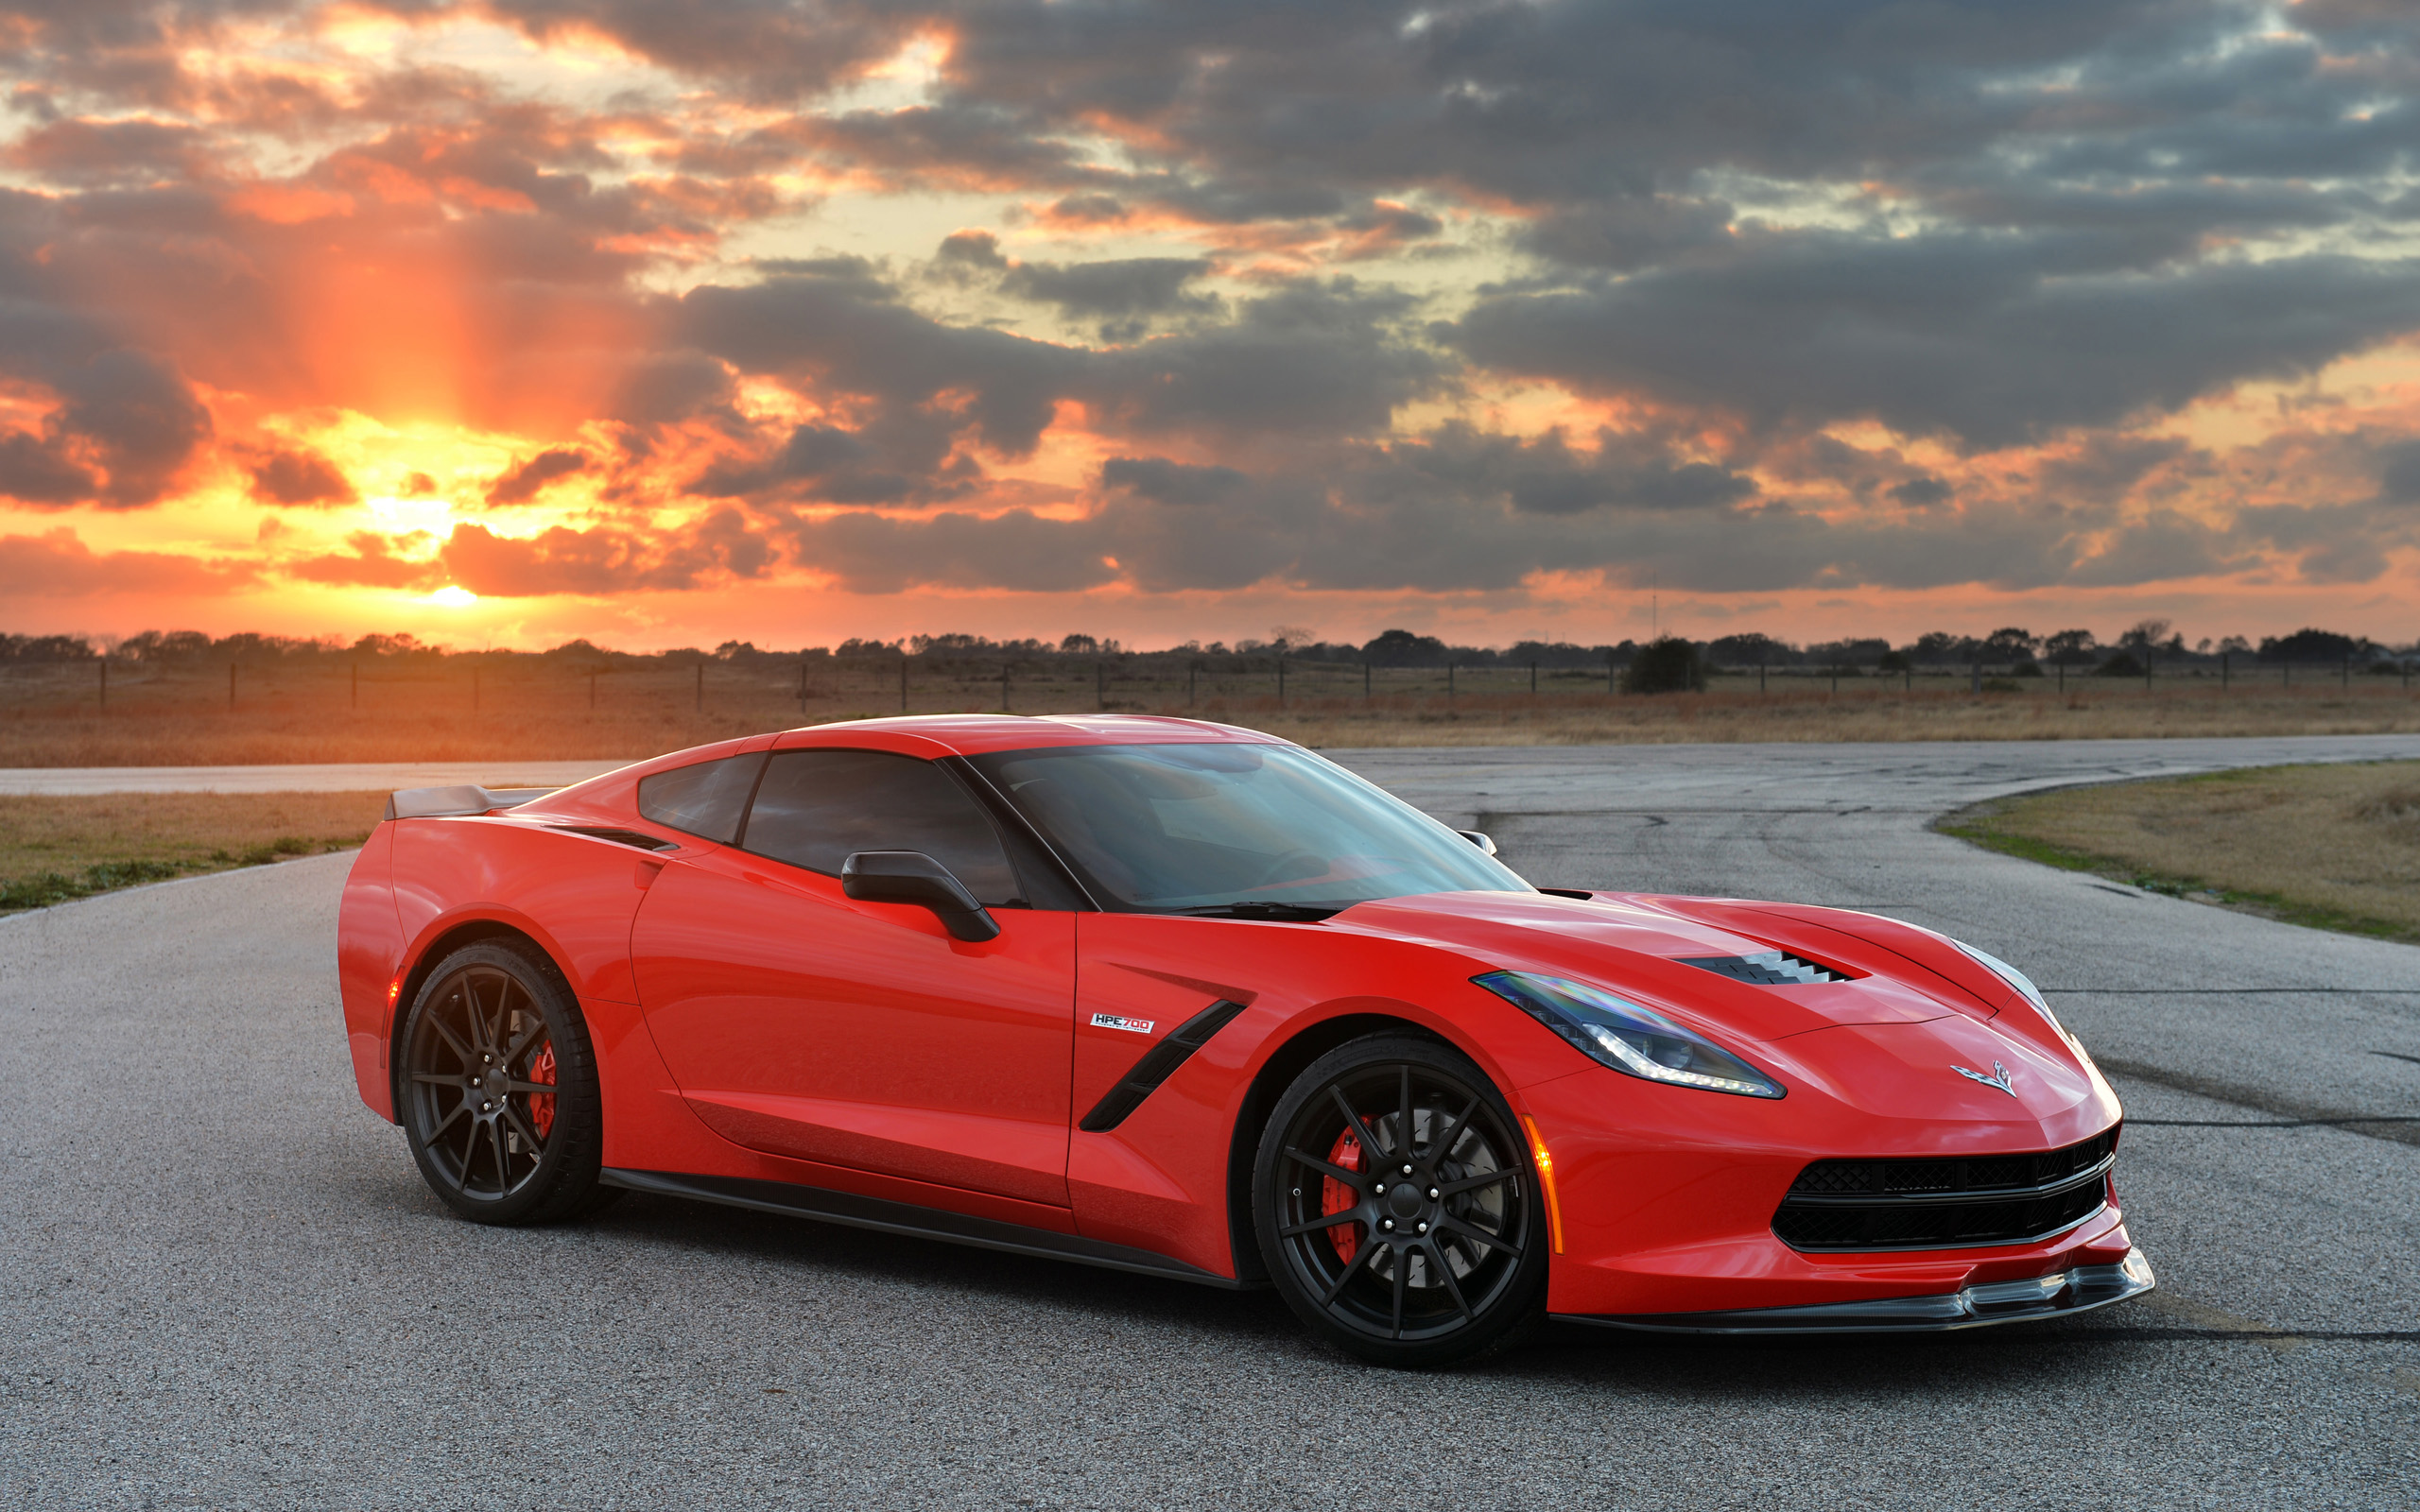 Chevrolet Corvette Stingray HPE700 Twin Turbo By Hennessey Wallpaper 2560x1600